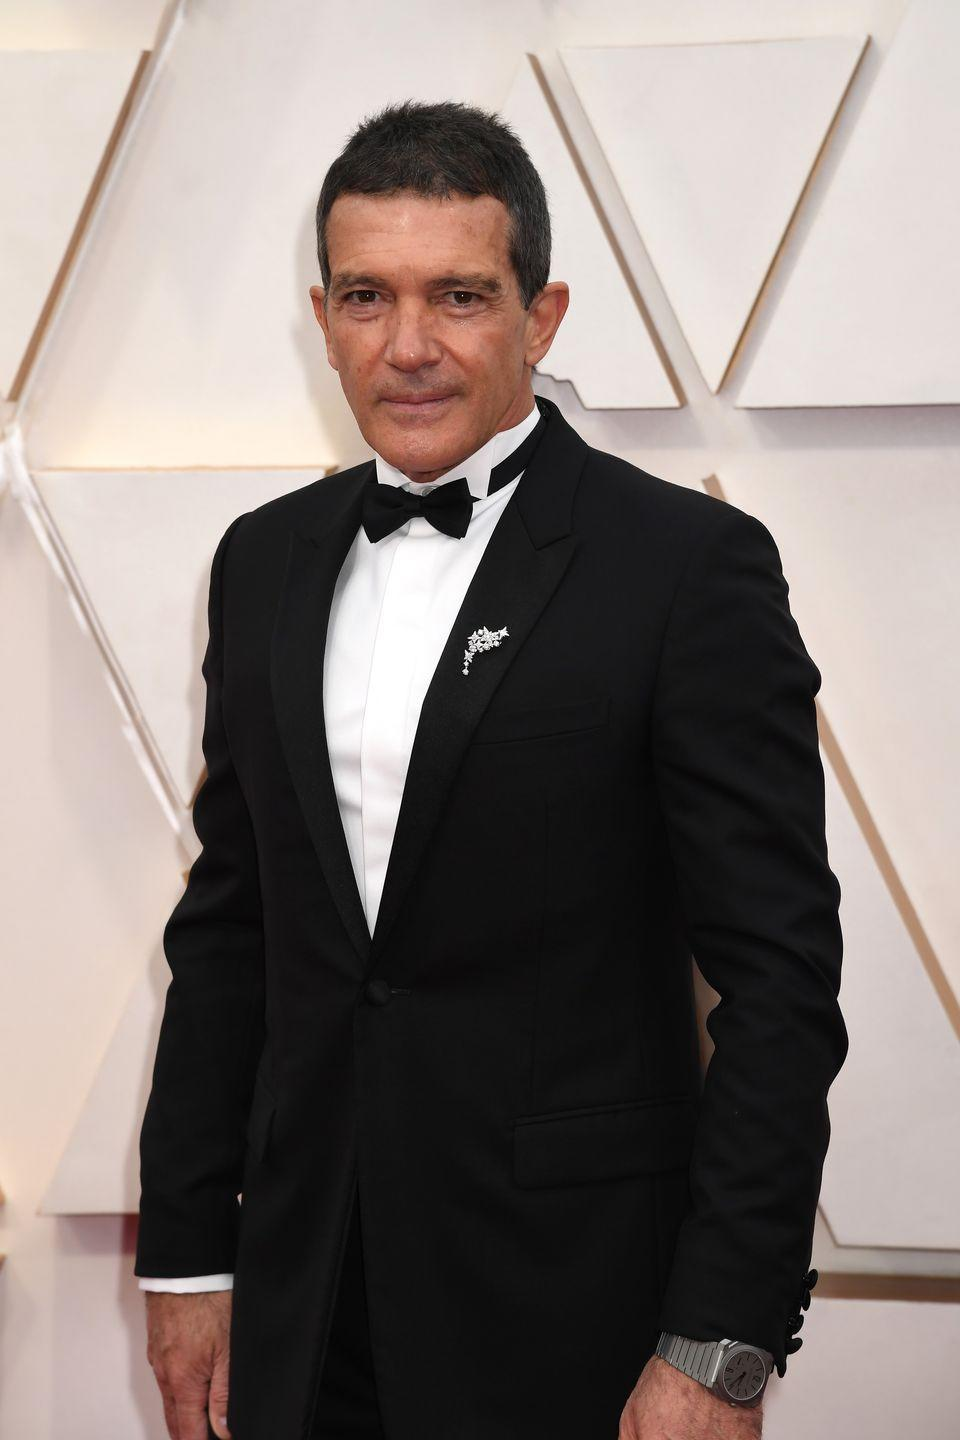 "<p><strong>Birthday: </strong>August 10</p><p><strong>Age Turning: </strong>60</p><p><a href=""https://www.oprahmag.com/entertainment/a29490387/antonio-banderas-ex-wife-melanie-griffith-best-friend/"" rel=""nofollow noopener"" target=""_blank"" data-ylk=""slk:Banderas"" class=""link rapid-noclick-resp"">Banderas</a>, an Oscar- <em>and </em>Tony- <em>and </em>Emmy-nominated actor, celebrates a milestone birthday in 2020.<br></p>"